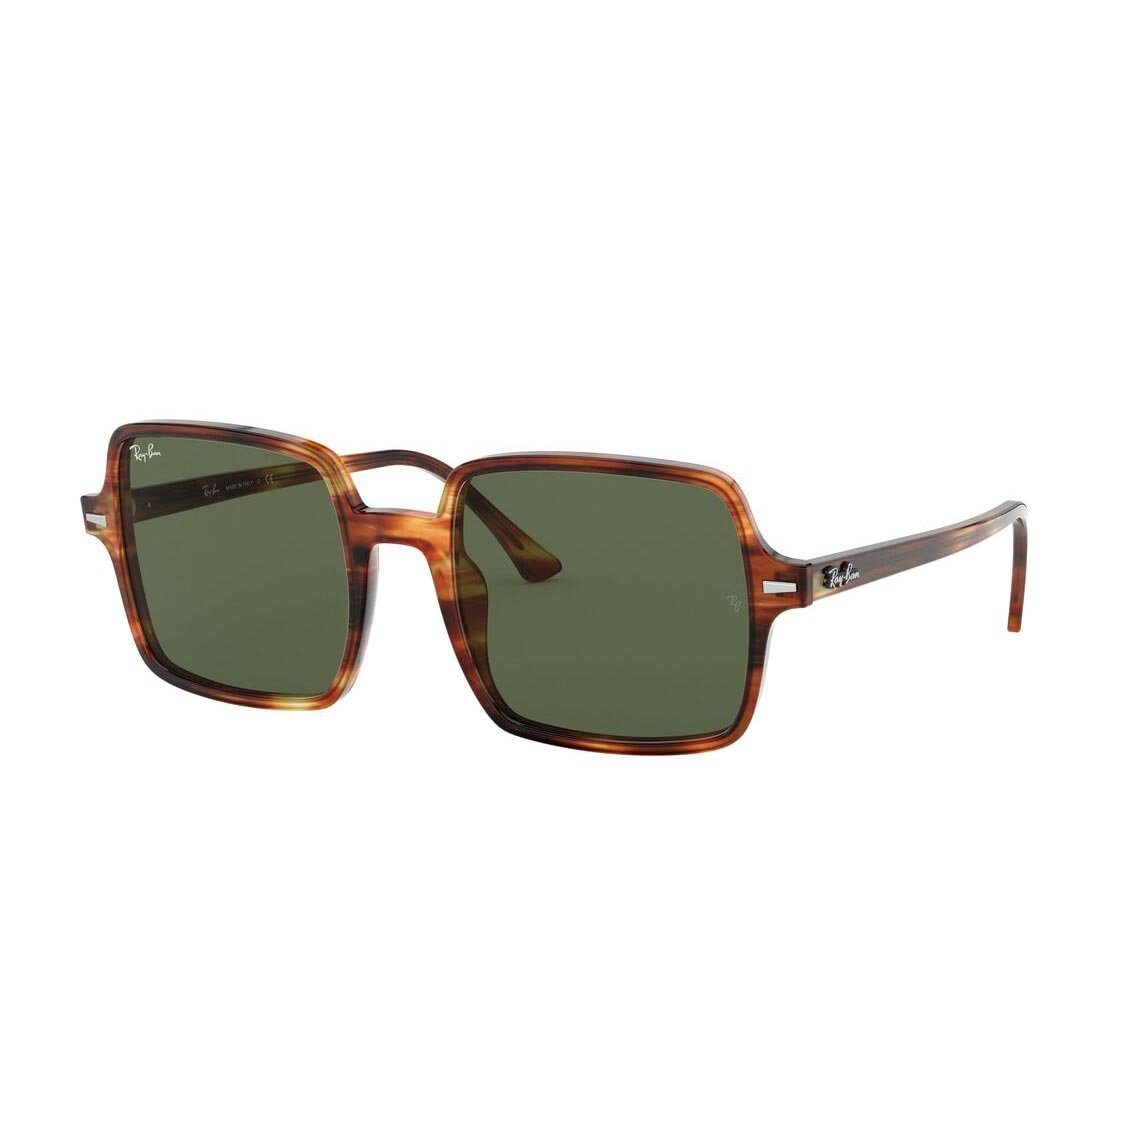 Ray-Ban Square II RB1973 954/31 5320